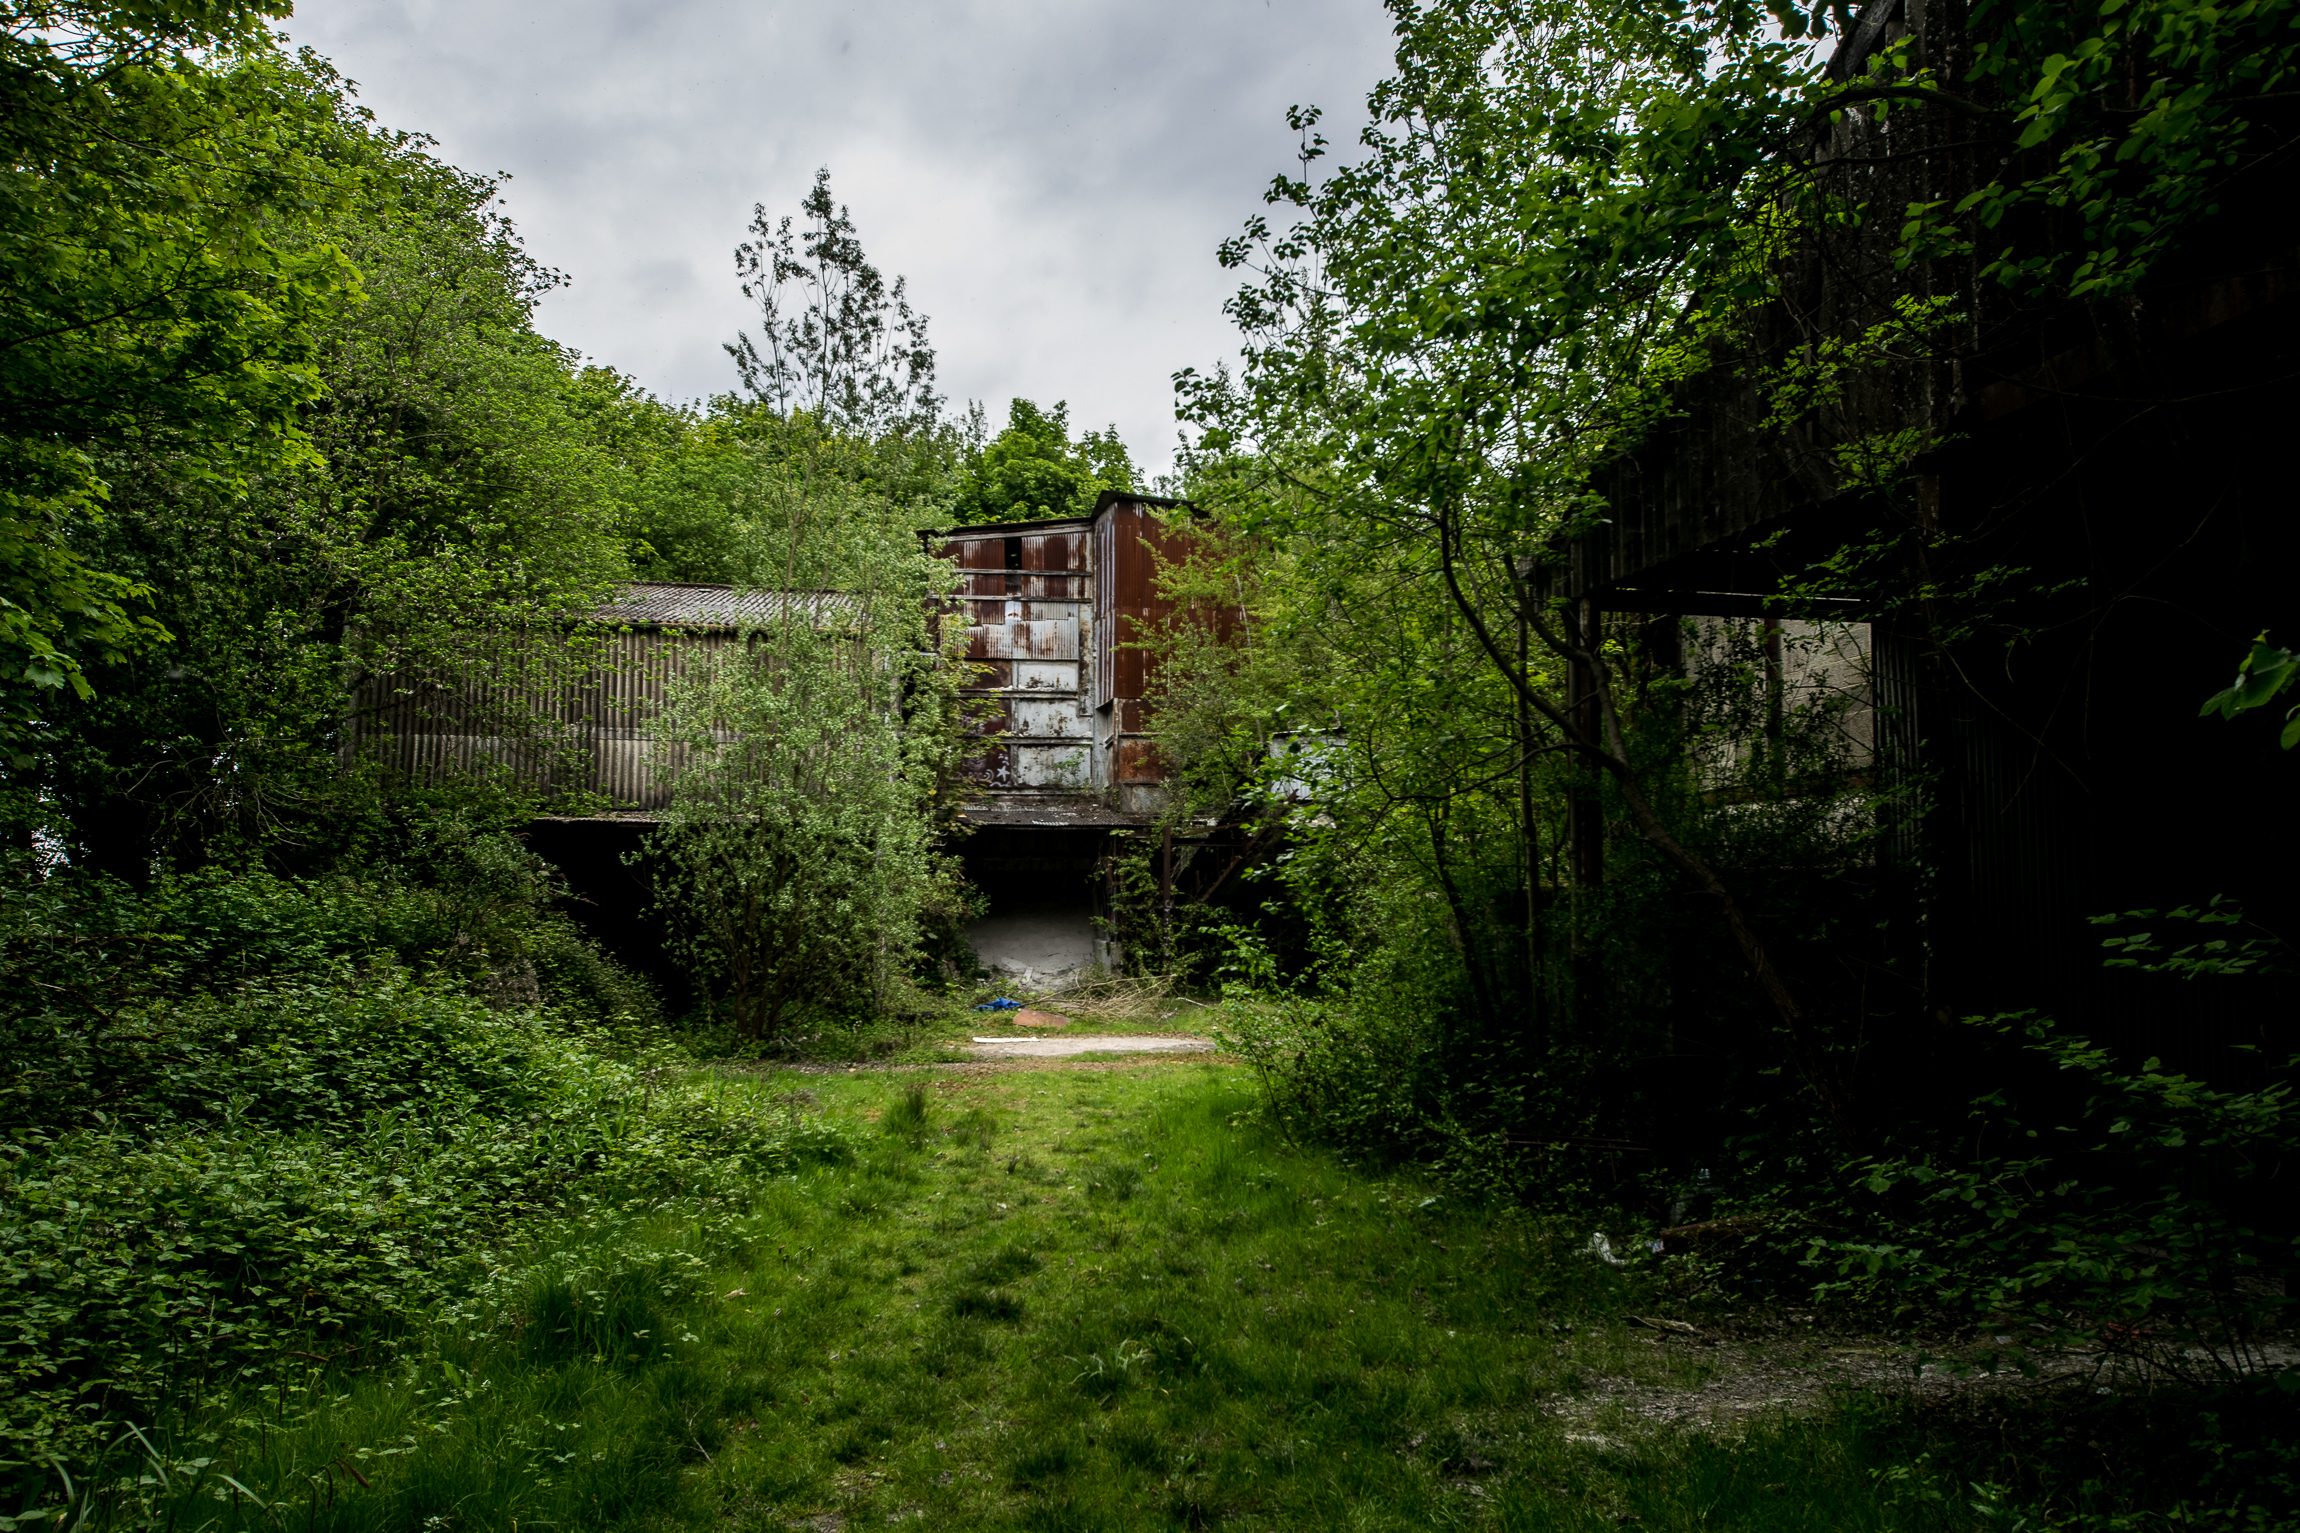 Derelict Lime Works - A very pictoresque place out in the middle of nowhere. I find wild growth and graf in combo very attractive